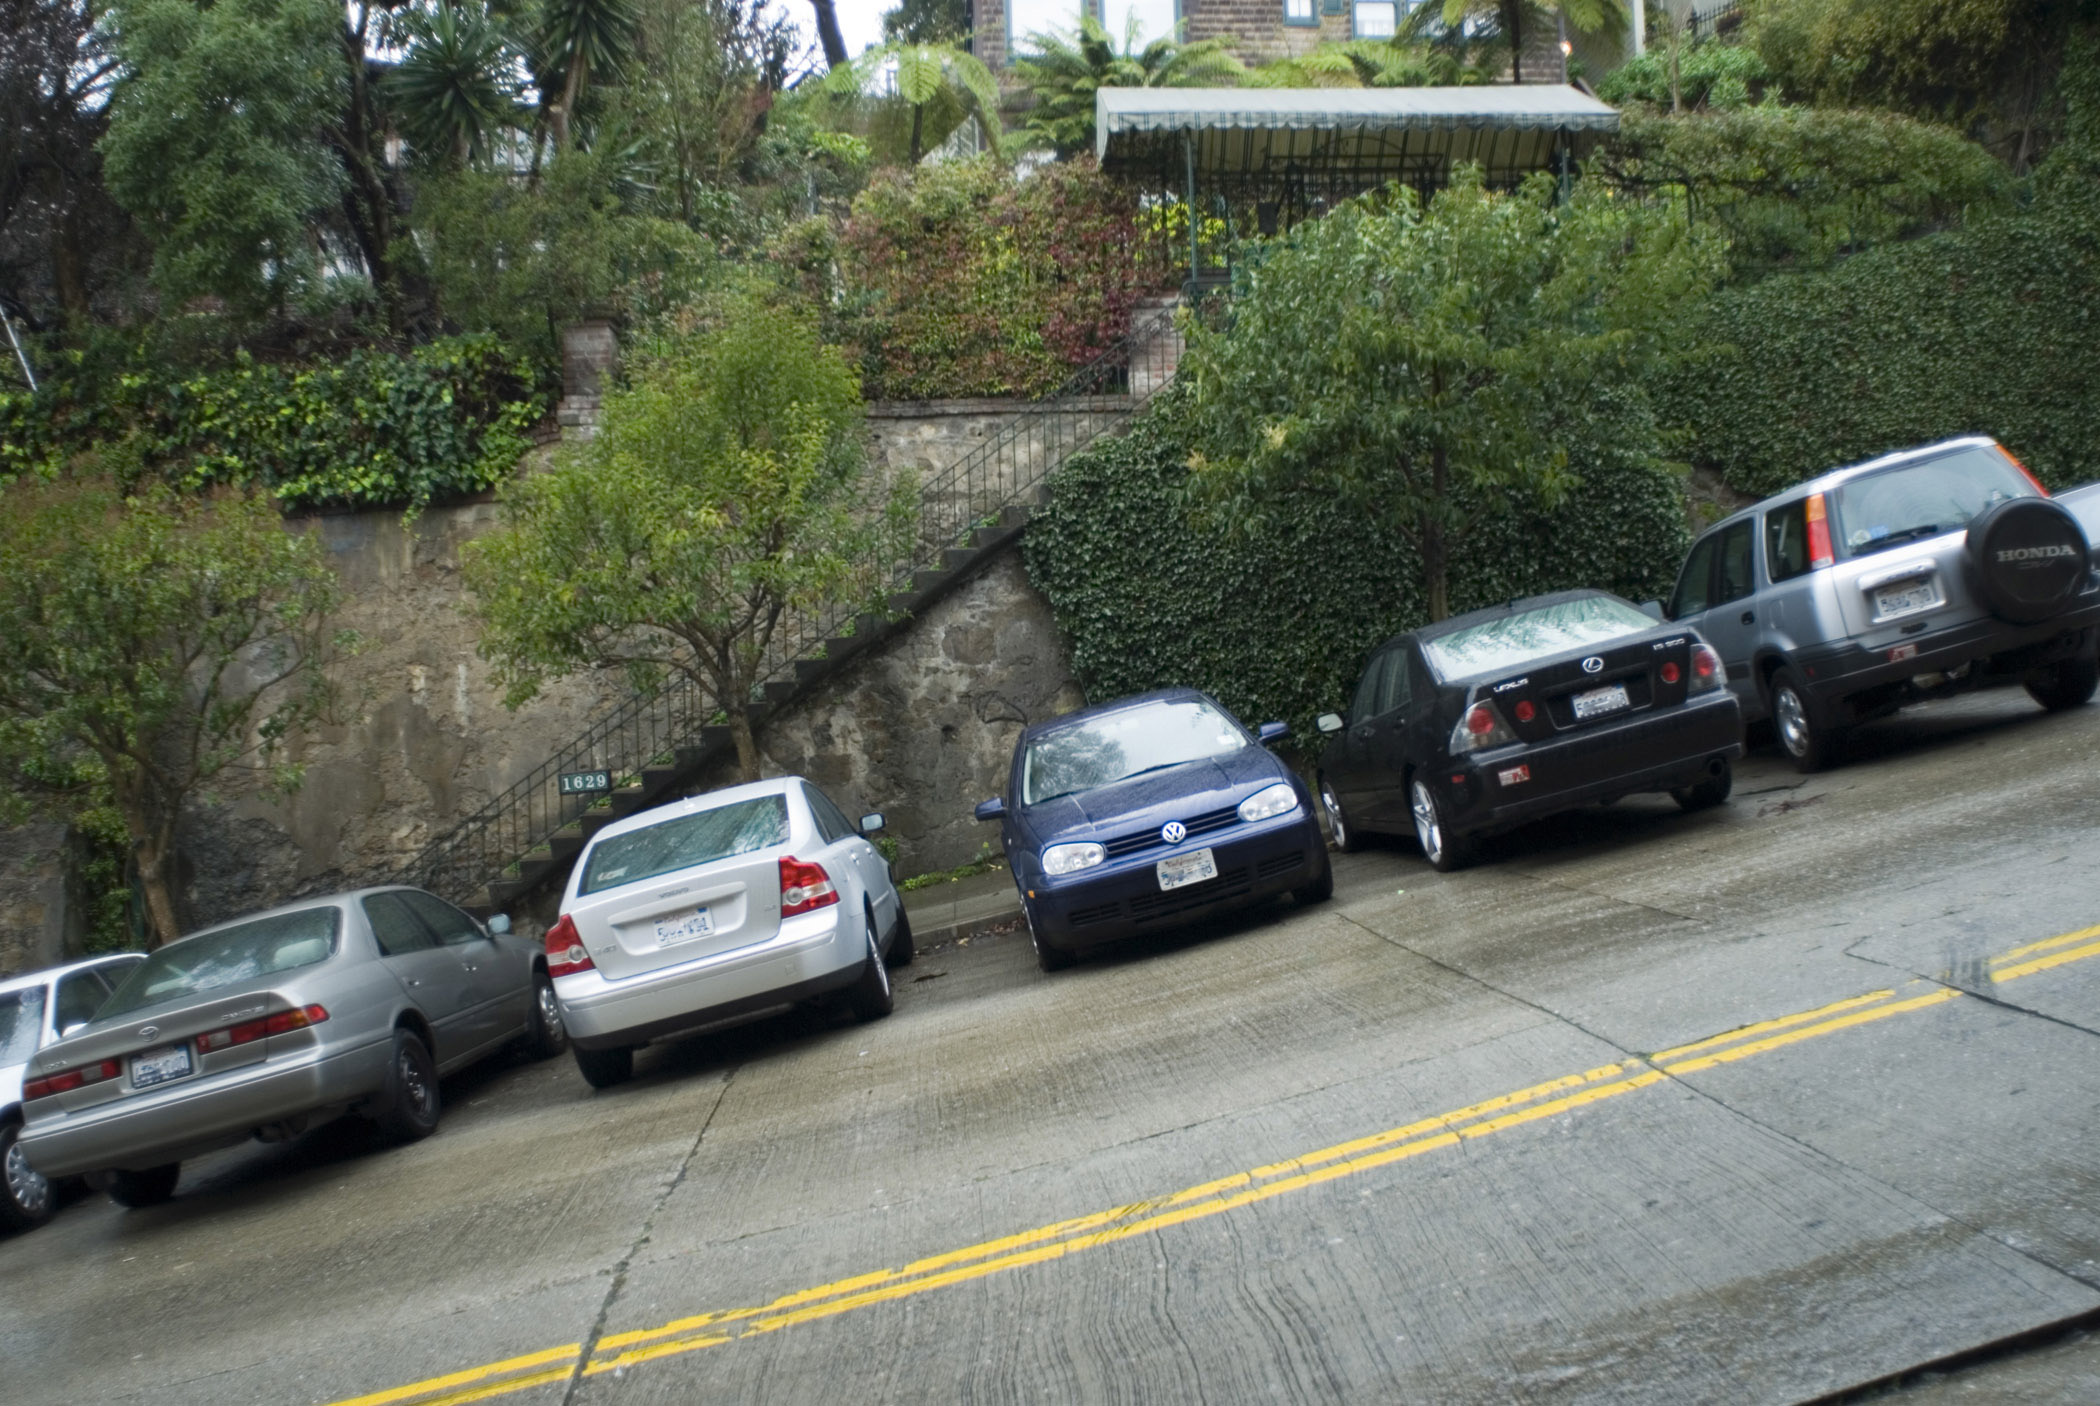 Cars parked side by side on a steep hill in San Francisco showing the steepness of the gradient on the streets leading down to the bay